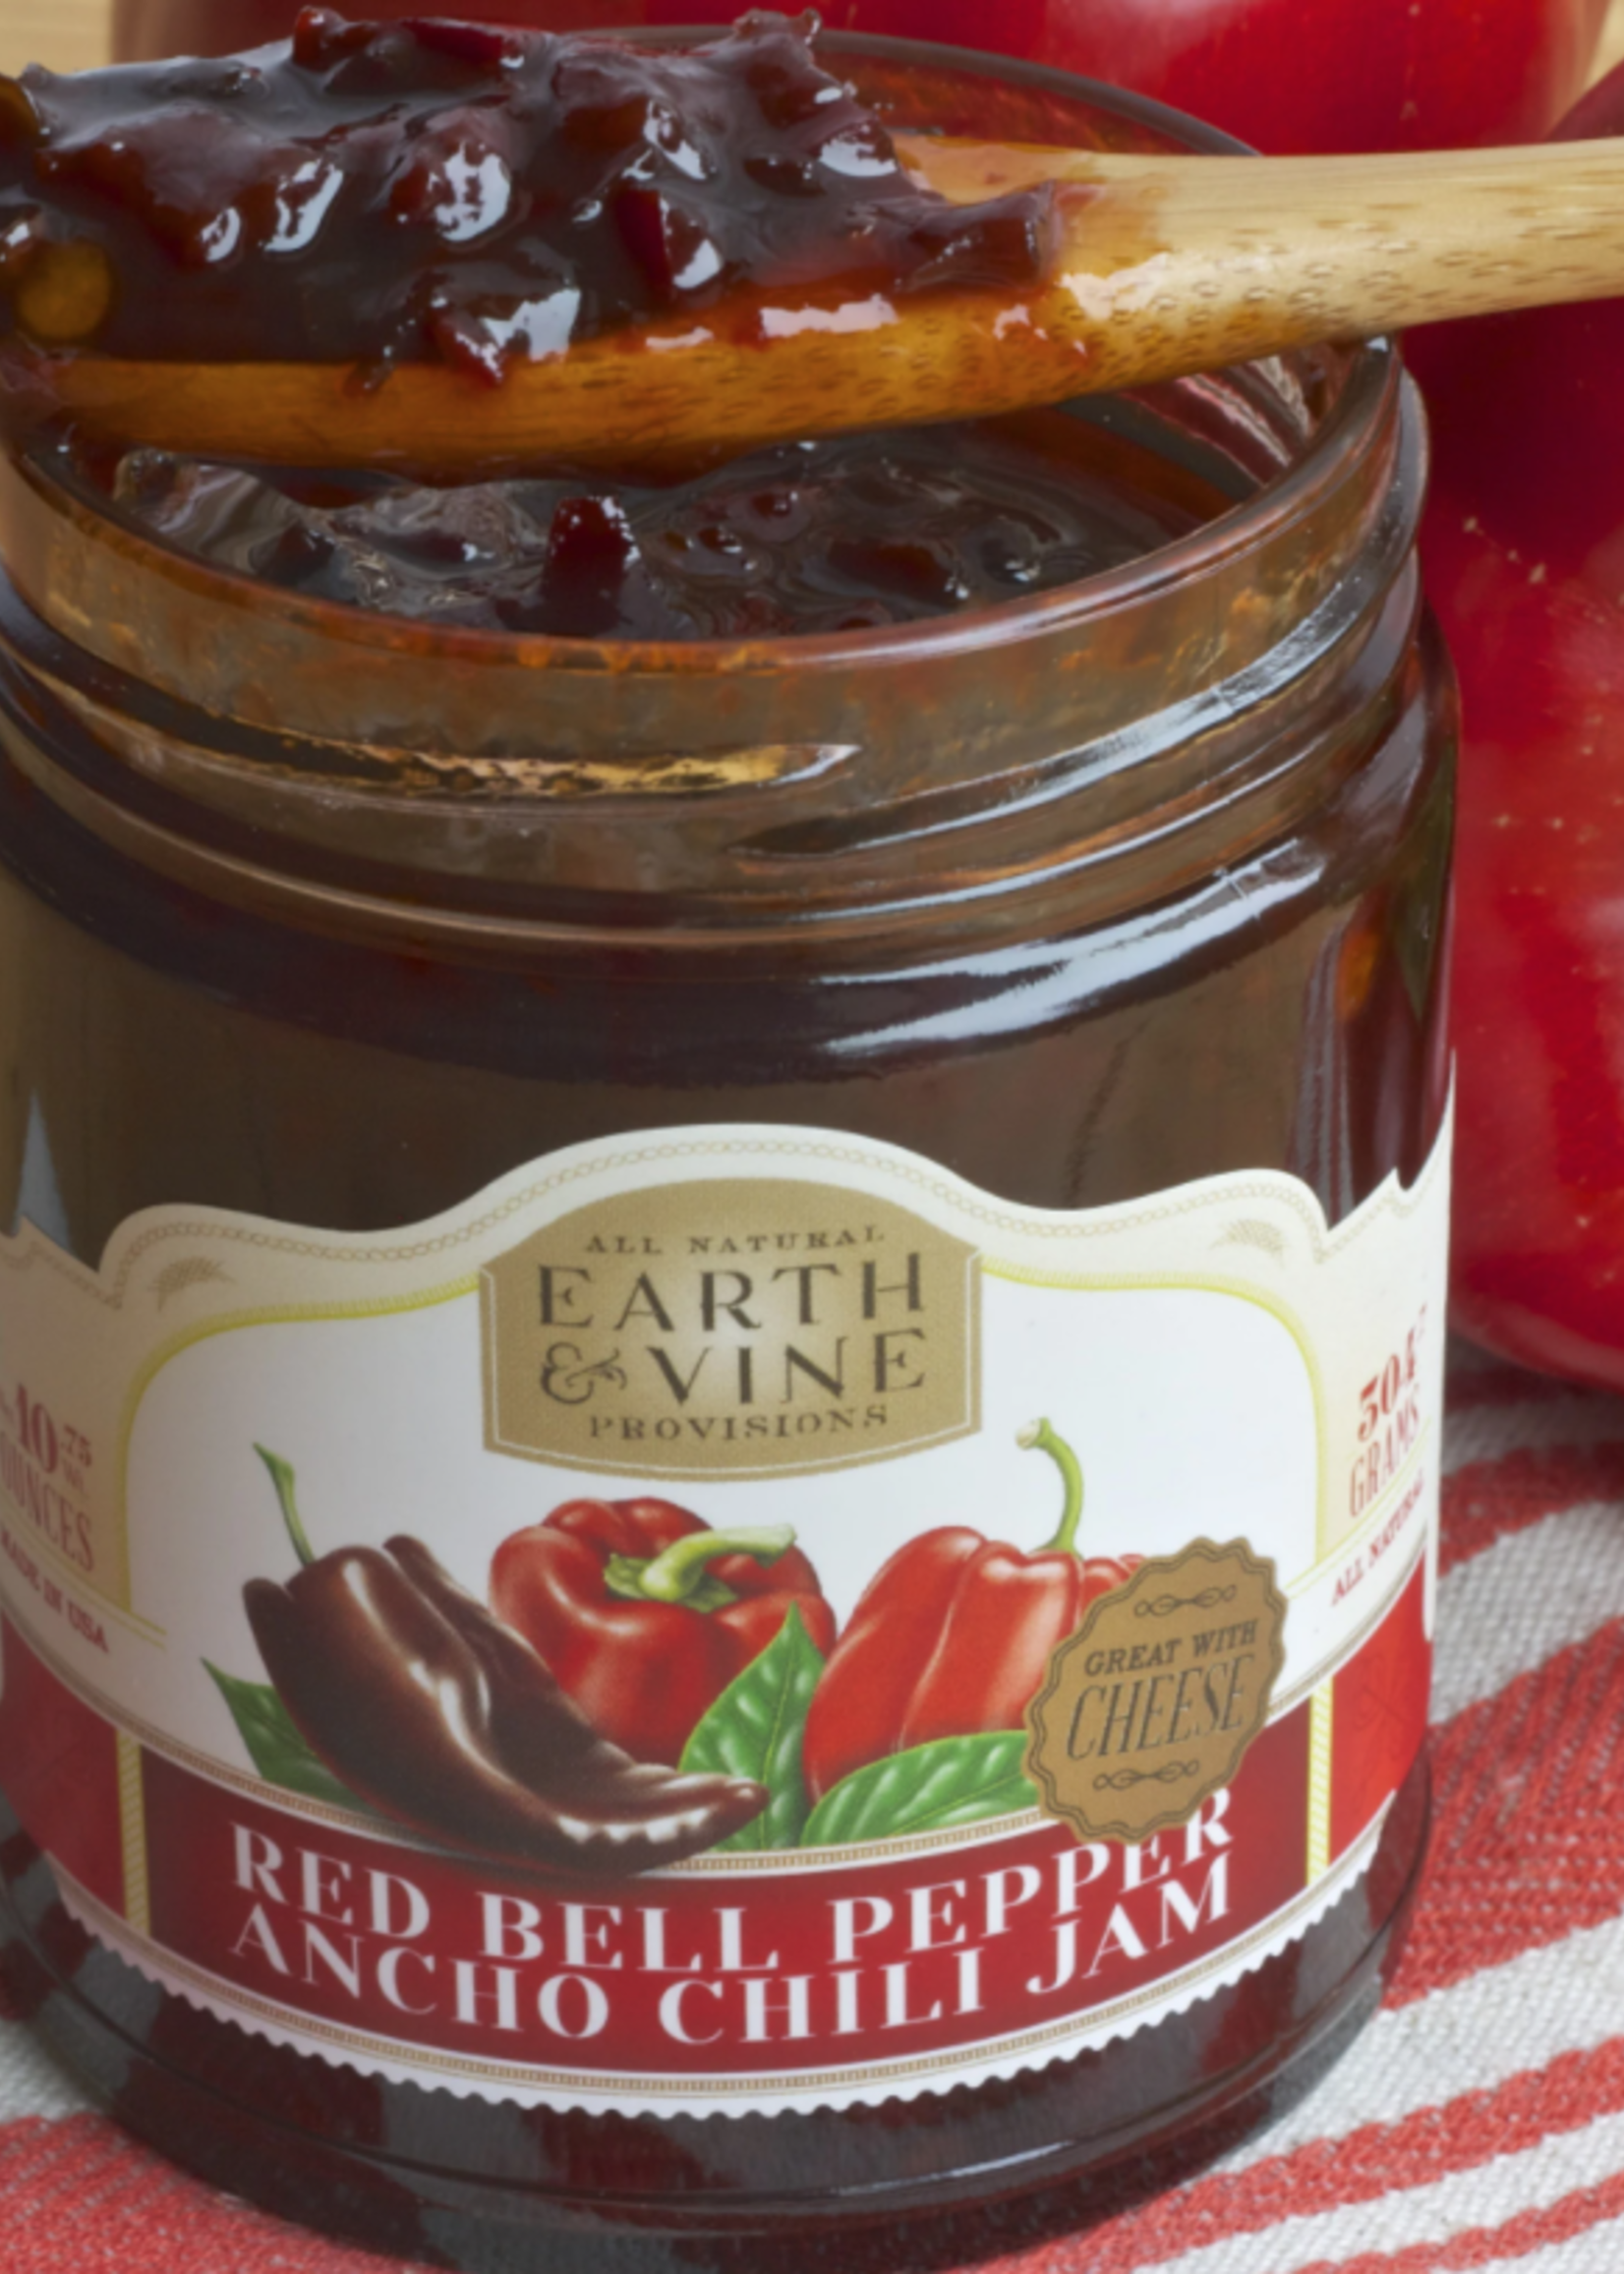 Earth & Vine Provisions, Inc. 10oz RED BELL PEPPER & ANCHO CHILI JAM